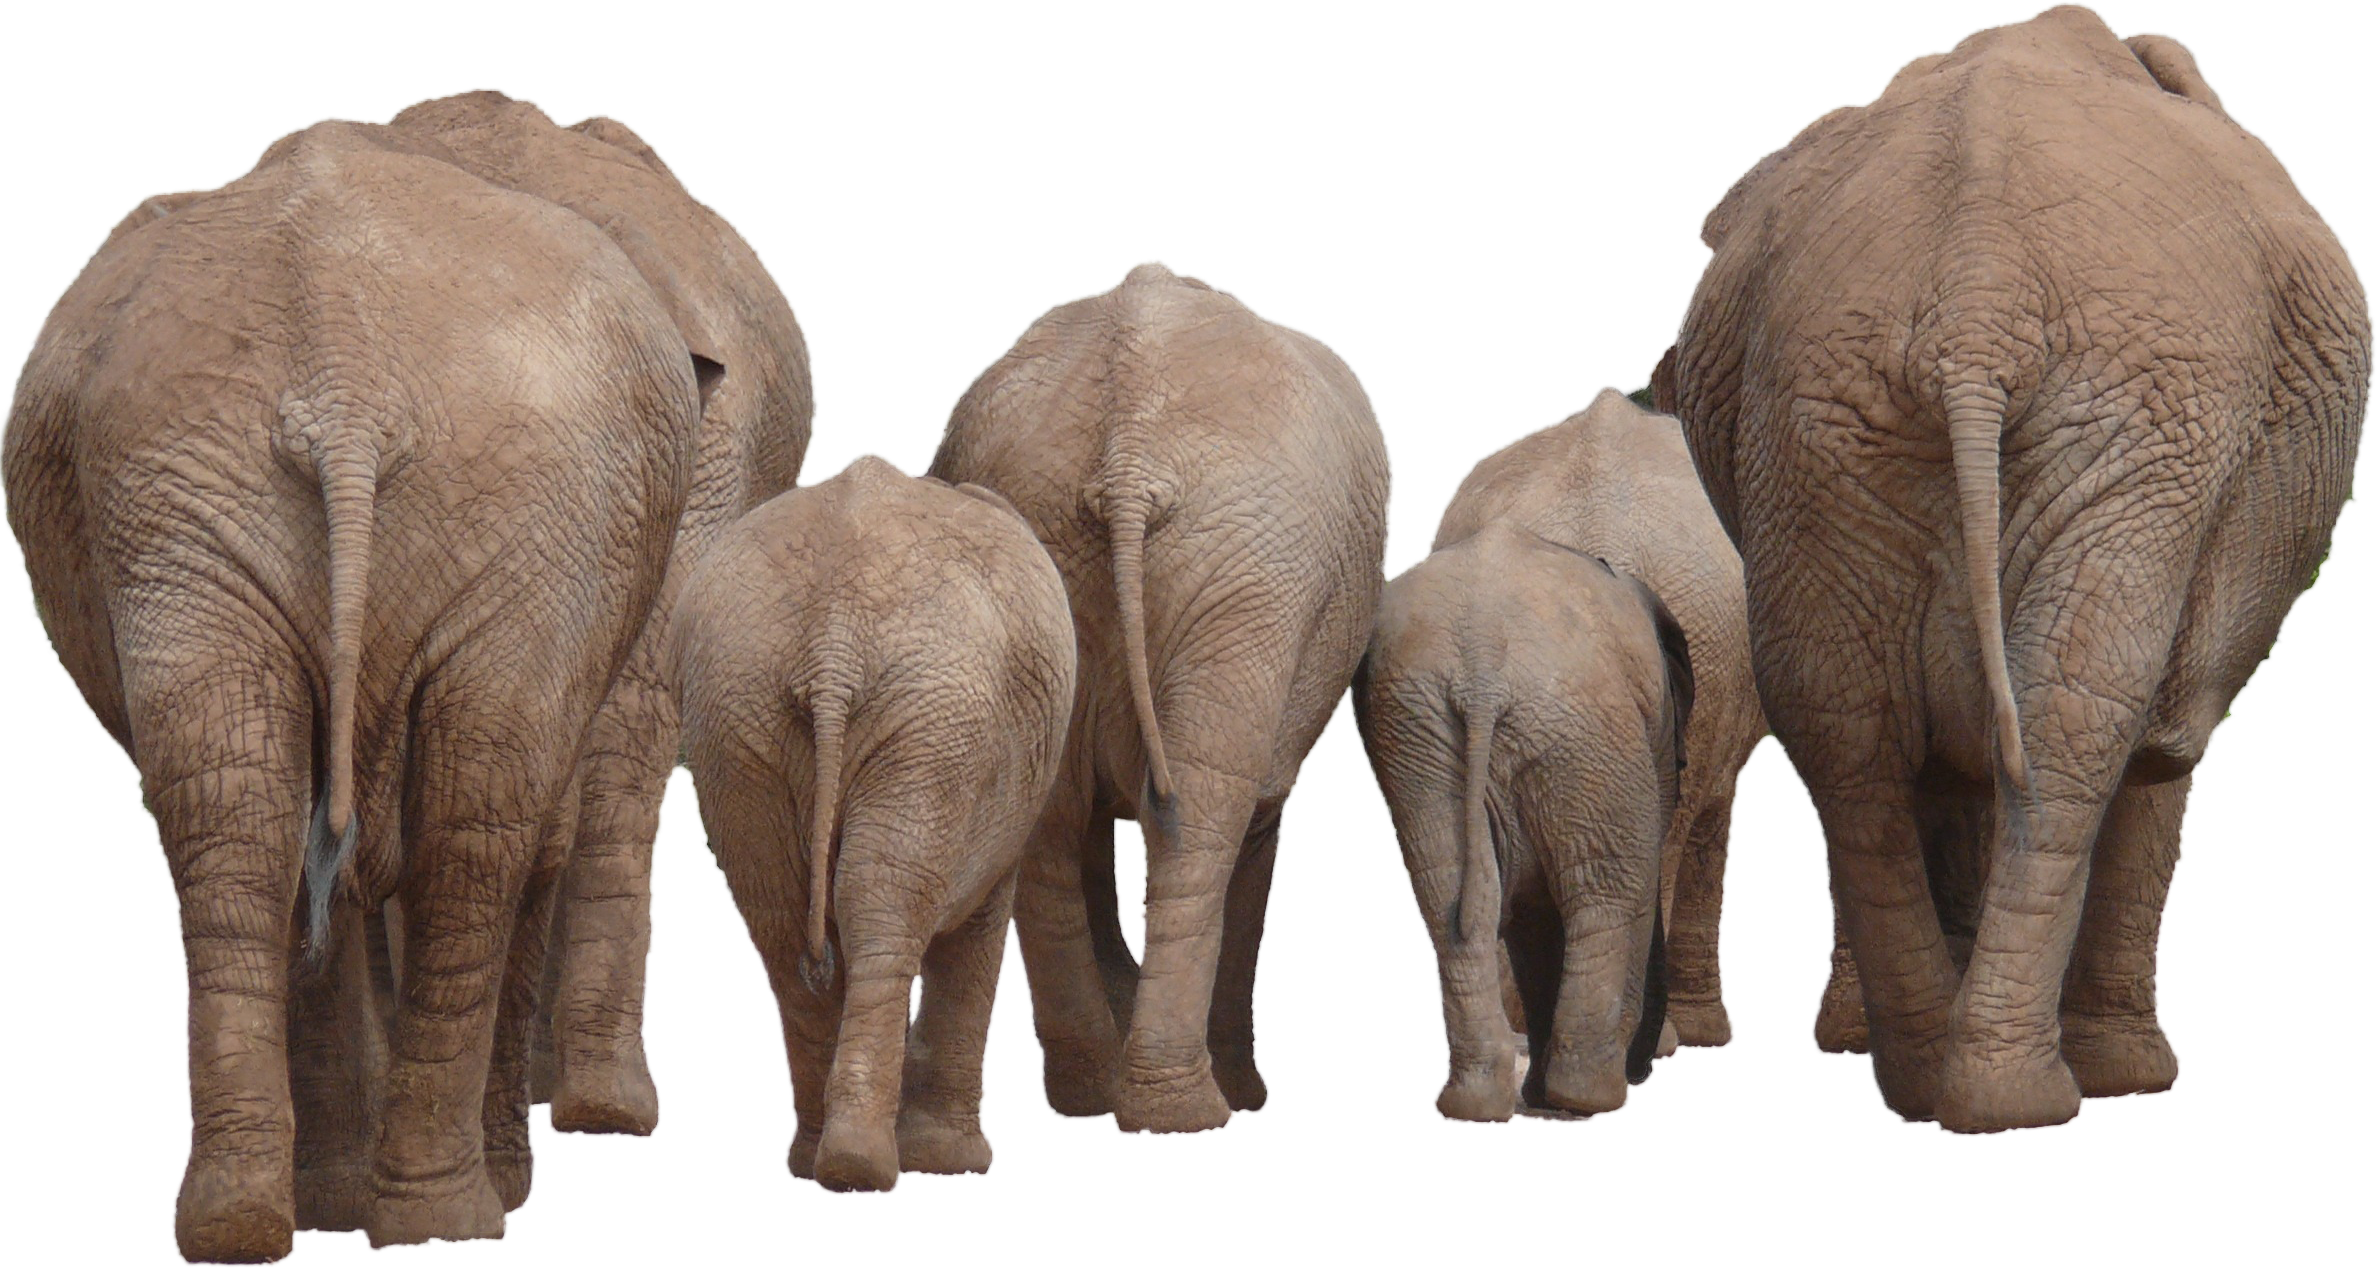 Elephant Group PNG Image - Elephant PNG